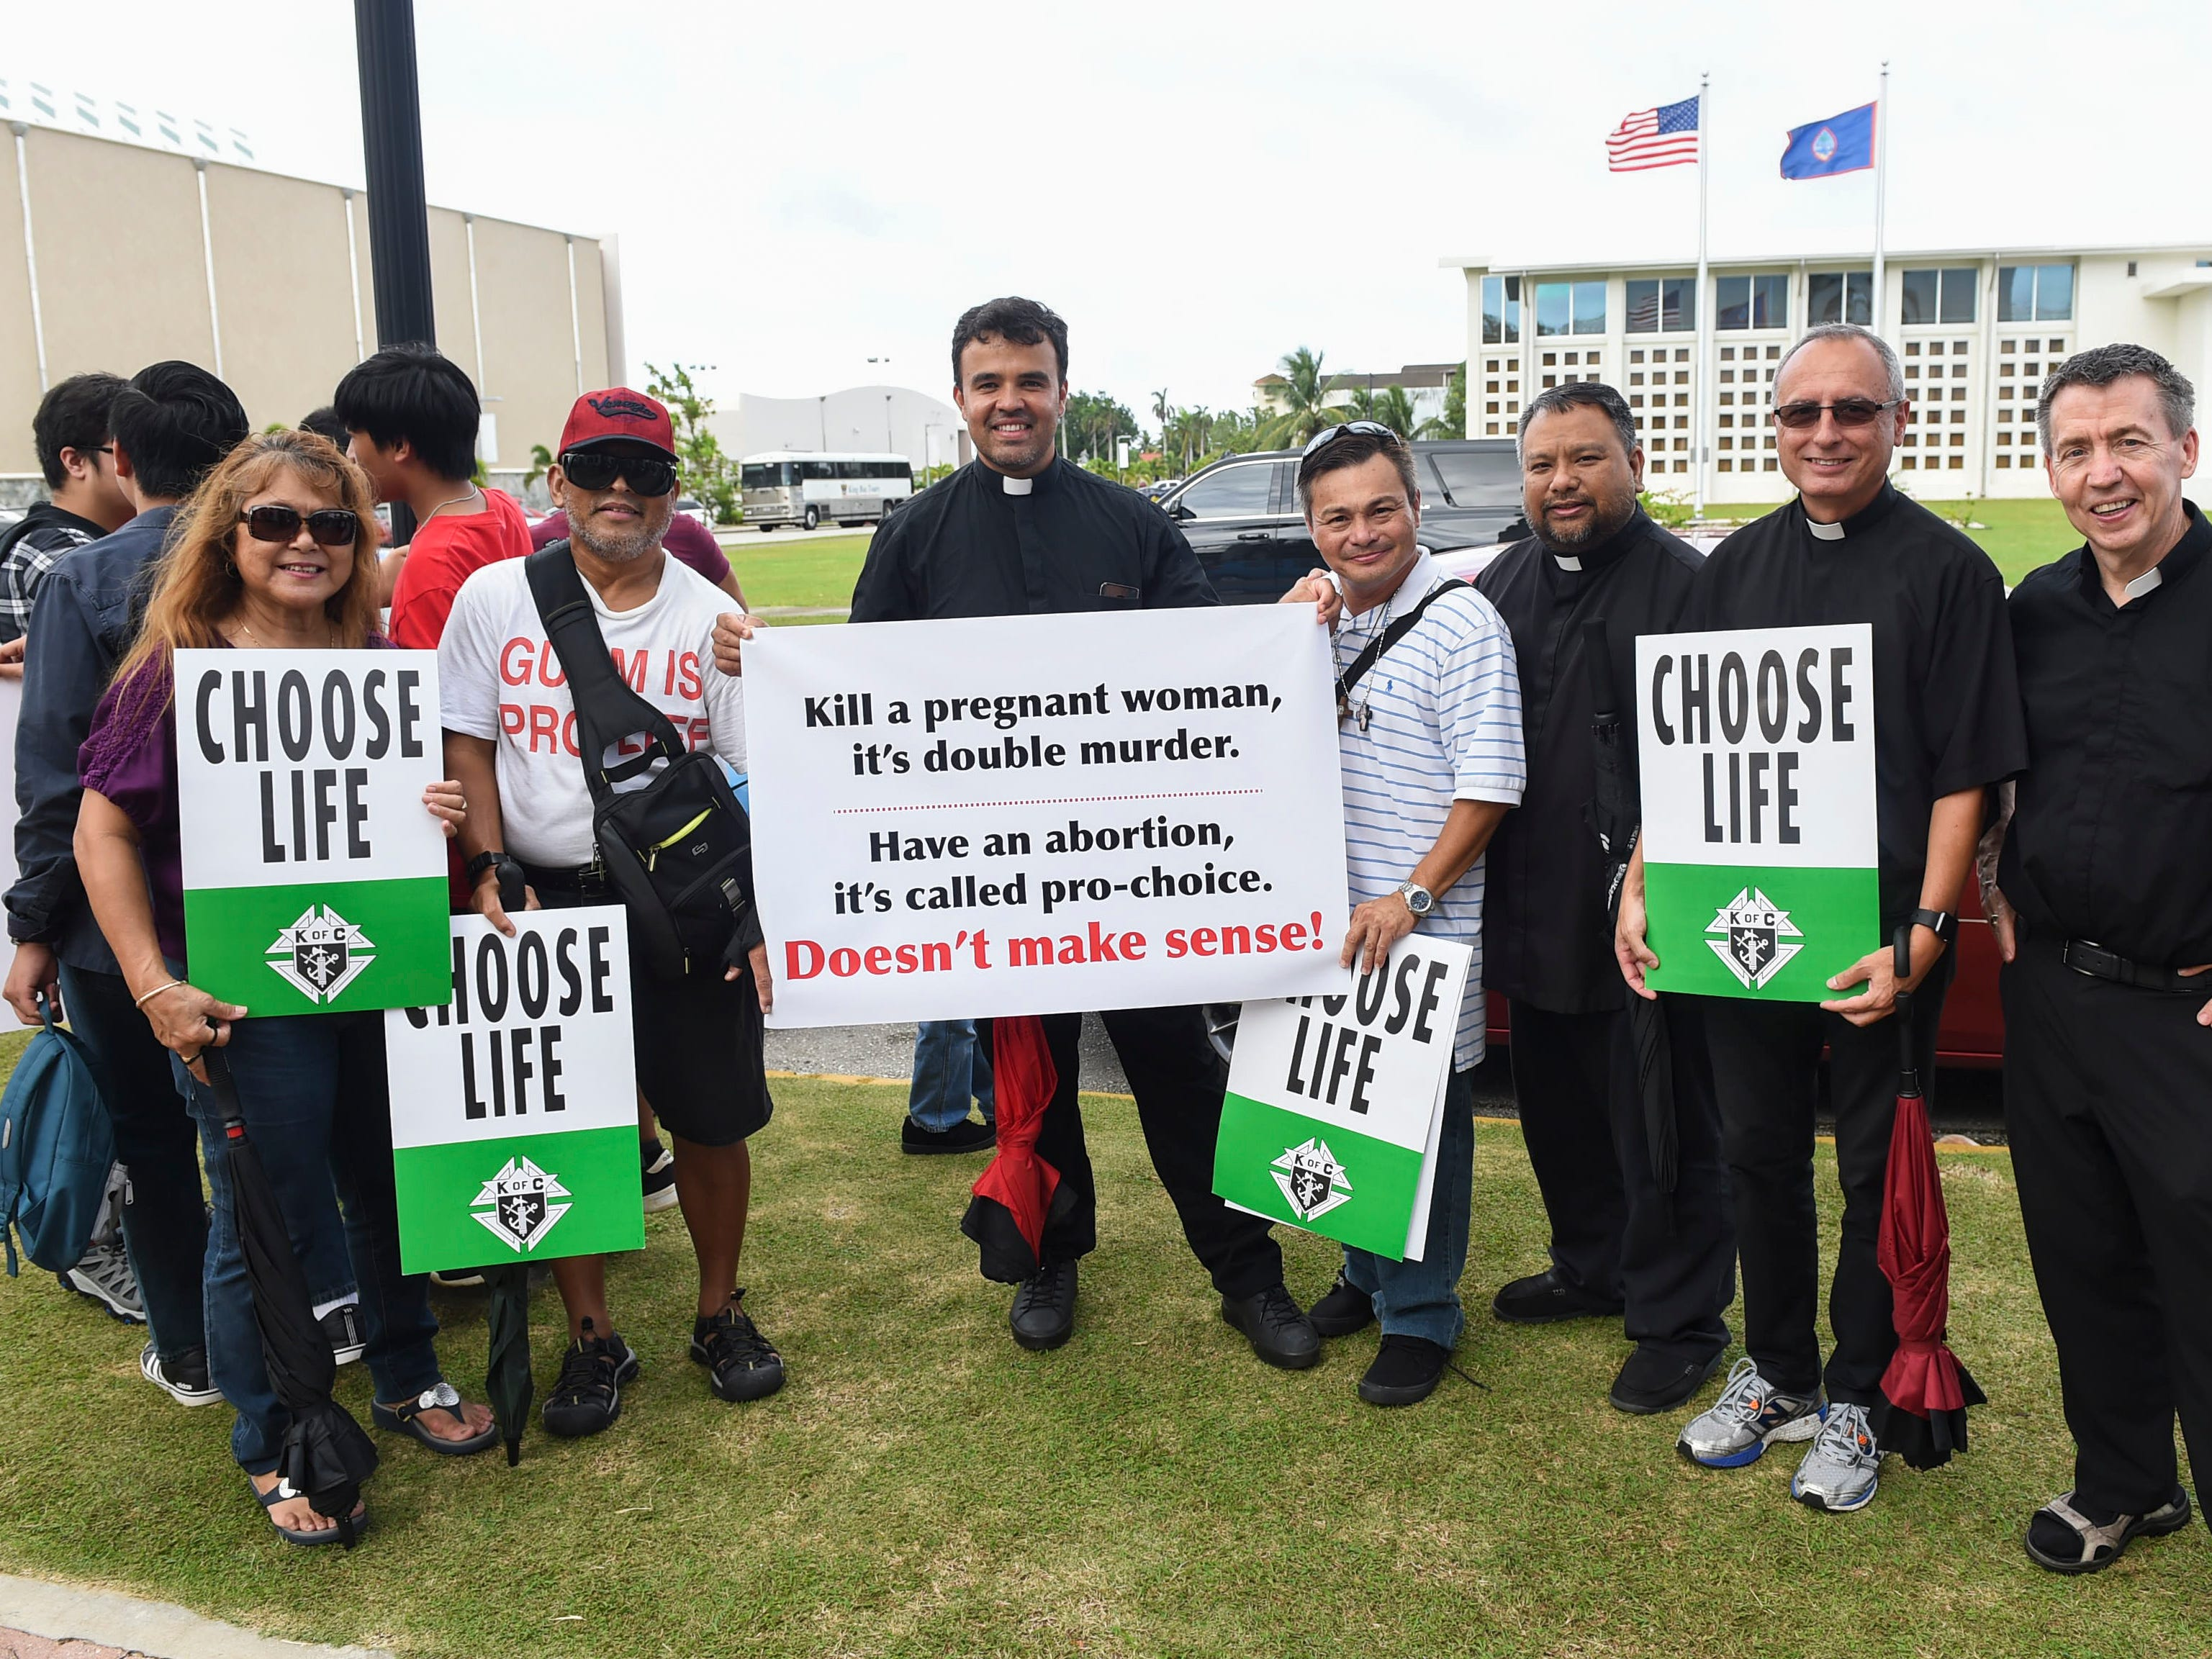 Parishioners and clergy members from St. Anthony's Catholic Church, Our Lady of Mount Carmel Catholic Church, and Dulce Nombre de Maria Cathedral-Basilica, attend the March for Life event in Hagåtña on Jan. 18, 2019.